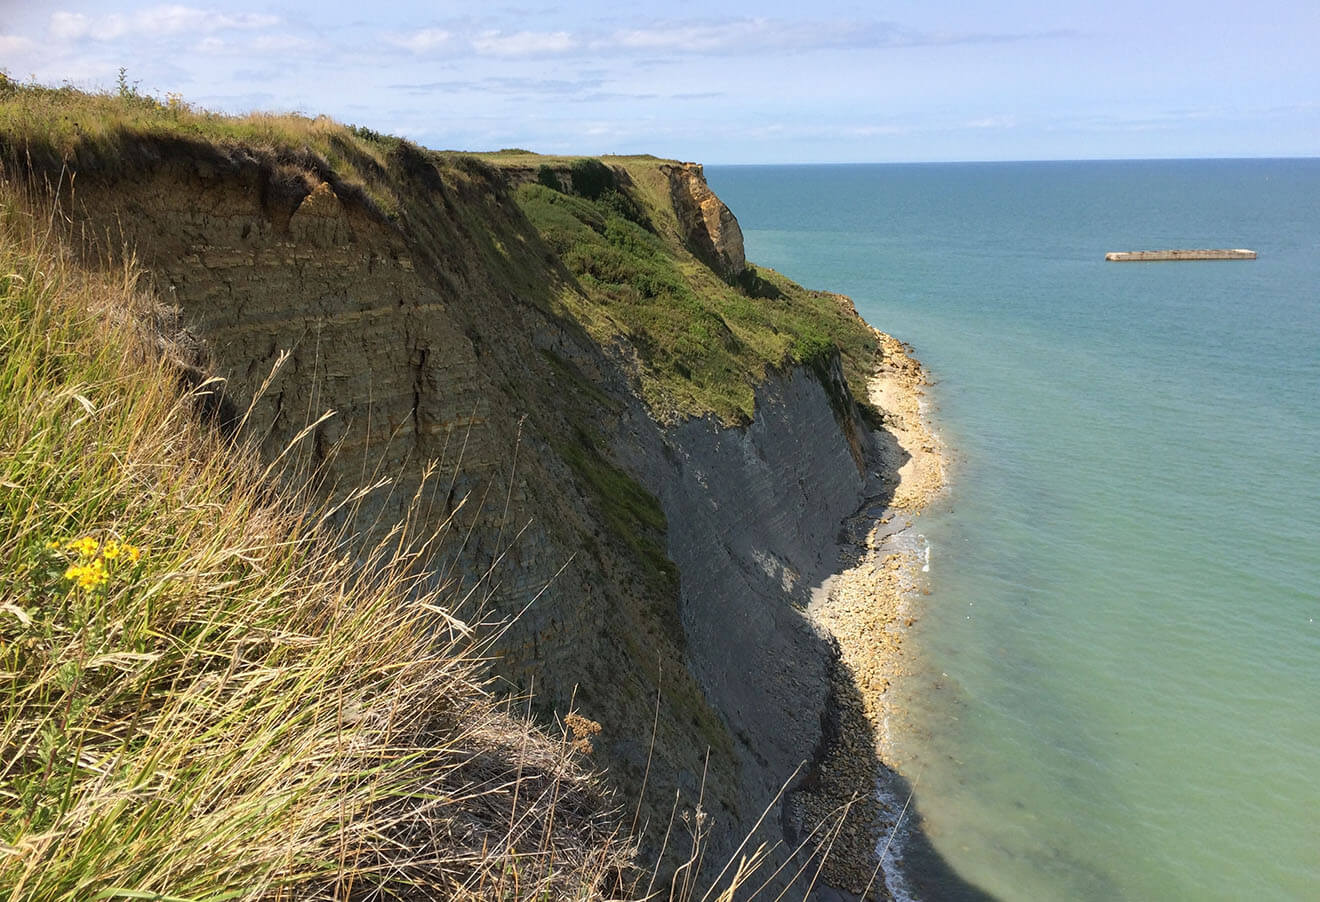 A Cliff along the coast of Normandy